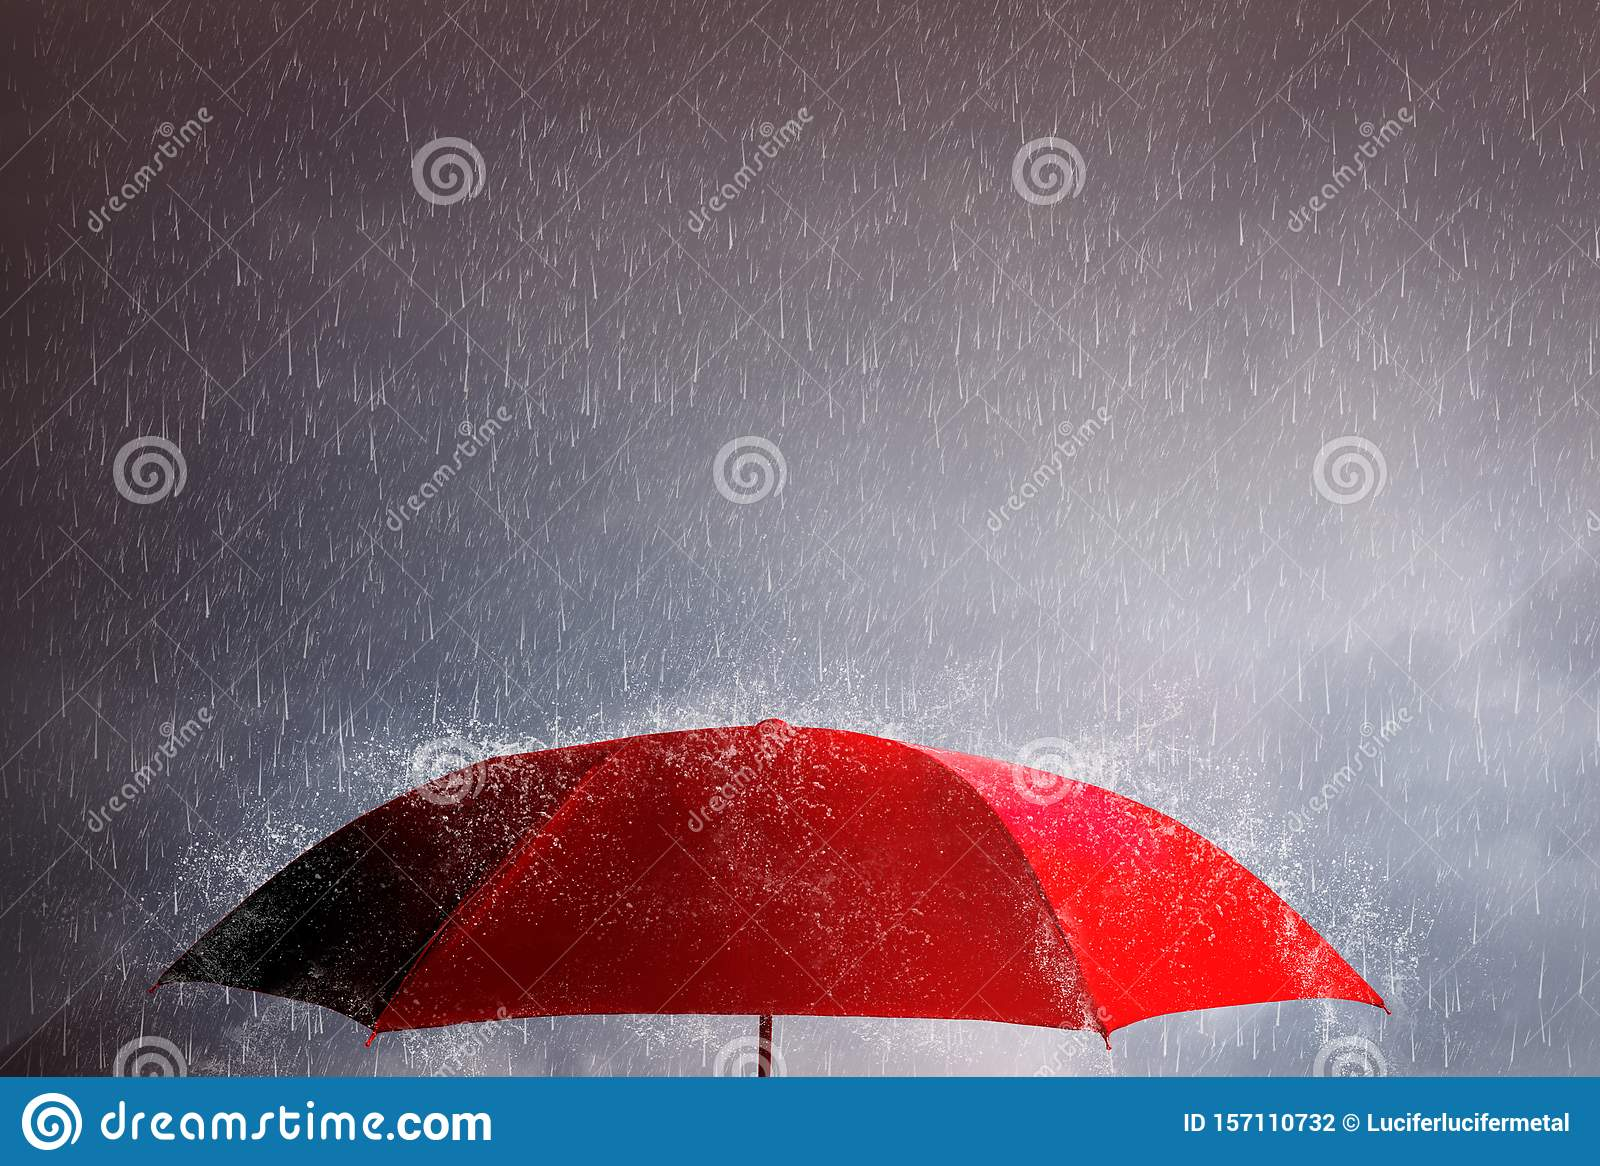 929 123 Rain Photos Free Royalty Free Stock Photos From Dreamstime Free for commercial use no attribution required high quality images. https www dreamstime com red umbrella against storm sky background black cloud group rain thunderstorm savings investment life accident image157110732